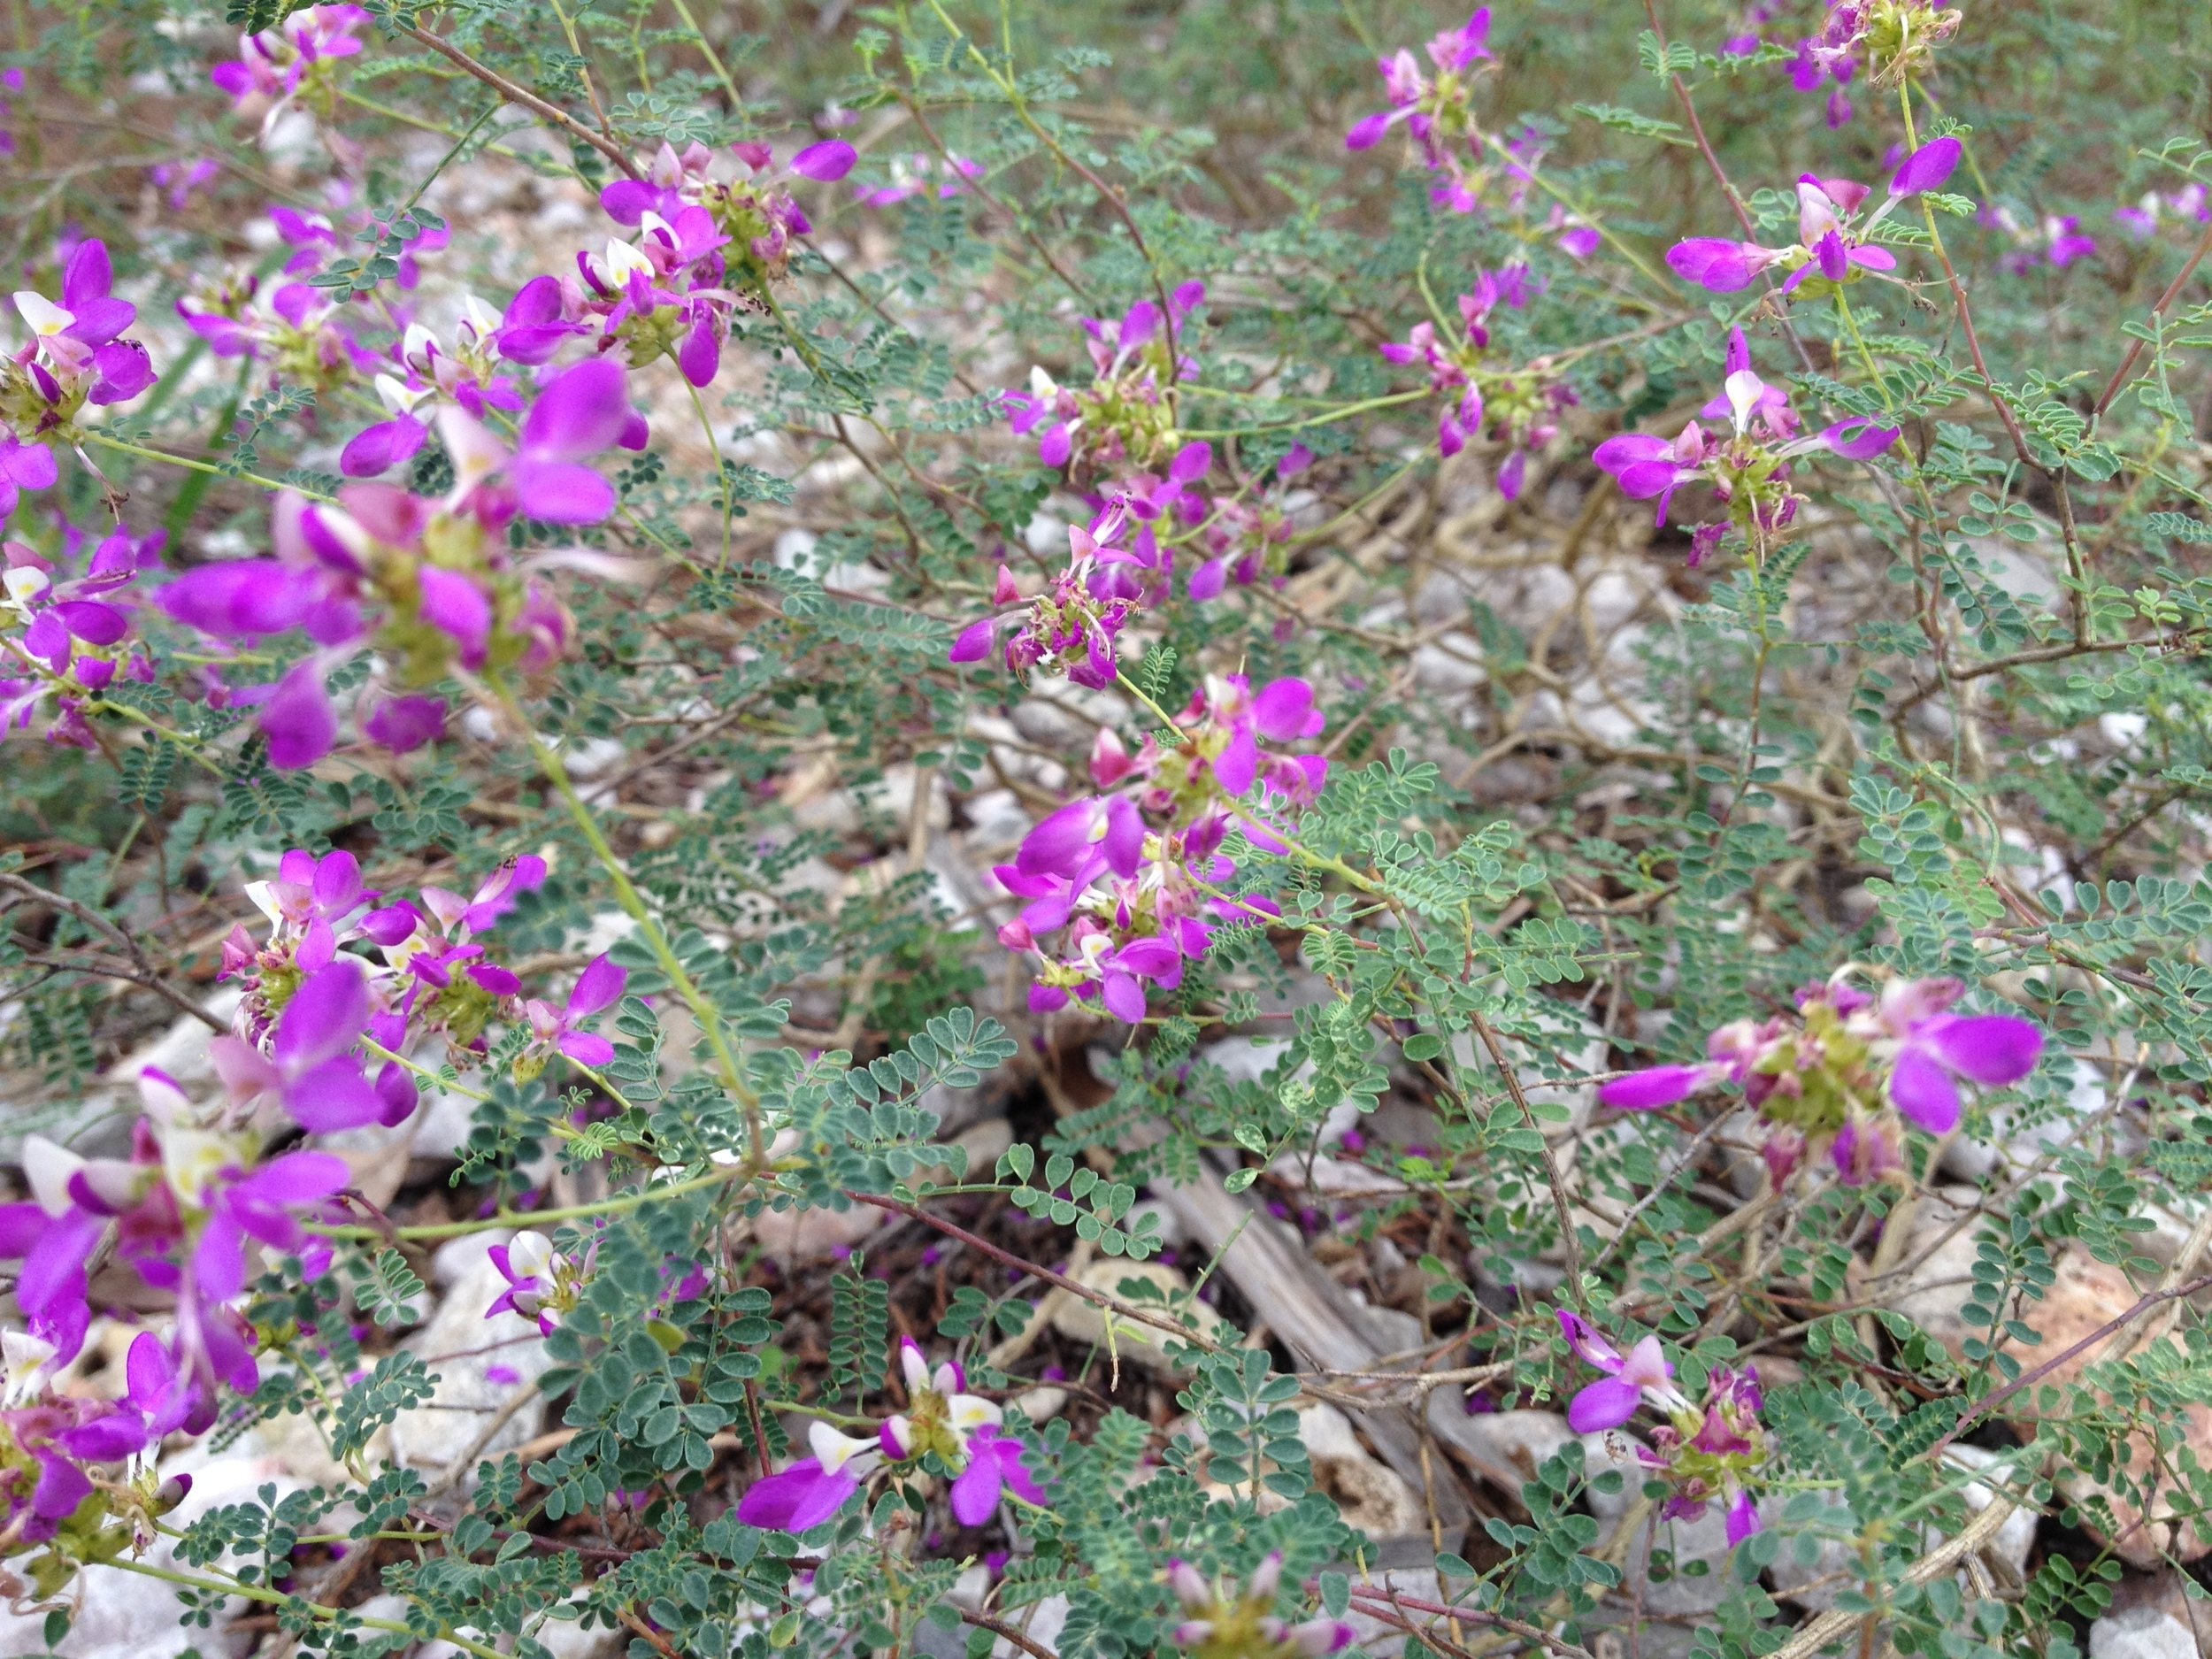 Dalea Frutescens- Black Dalea  Now is the time to plant wildflower seed for them to come up in the spring. Check out this great native plant for your yard.